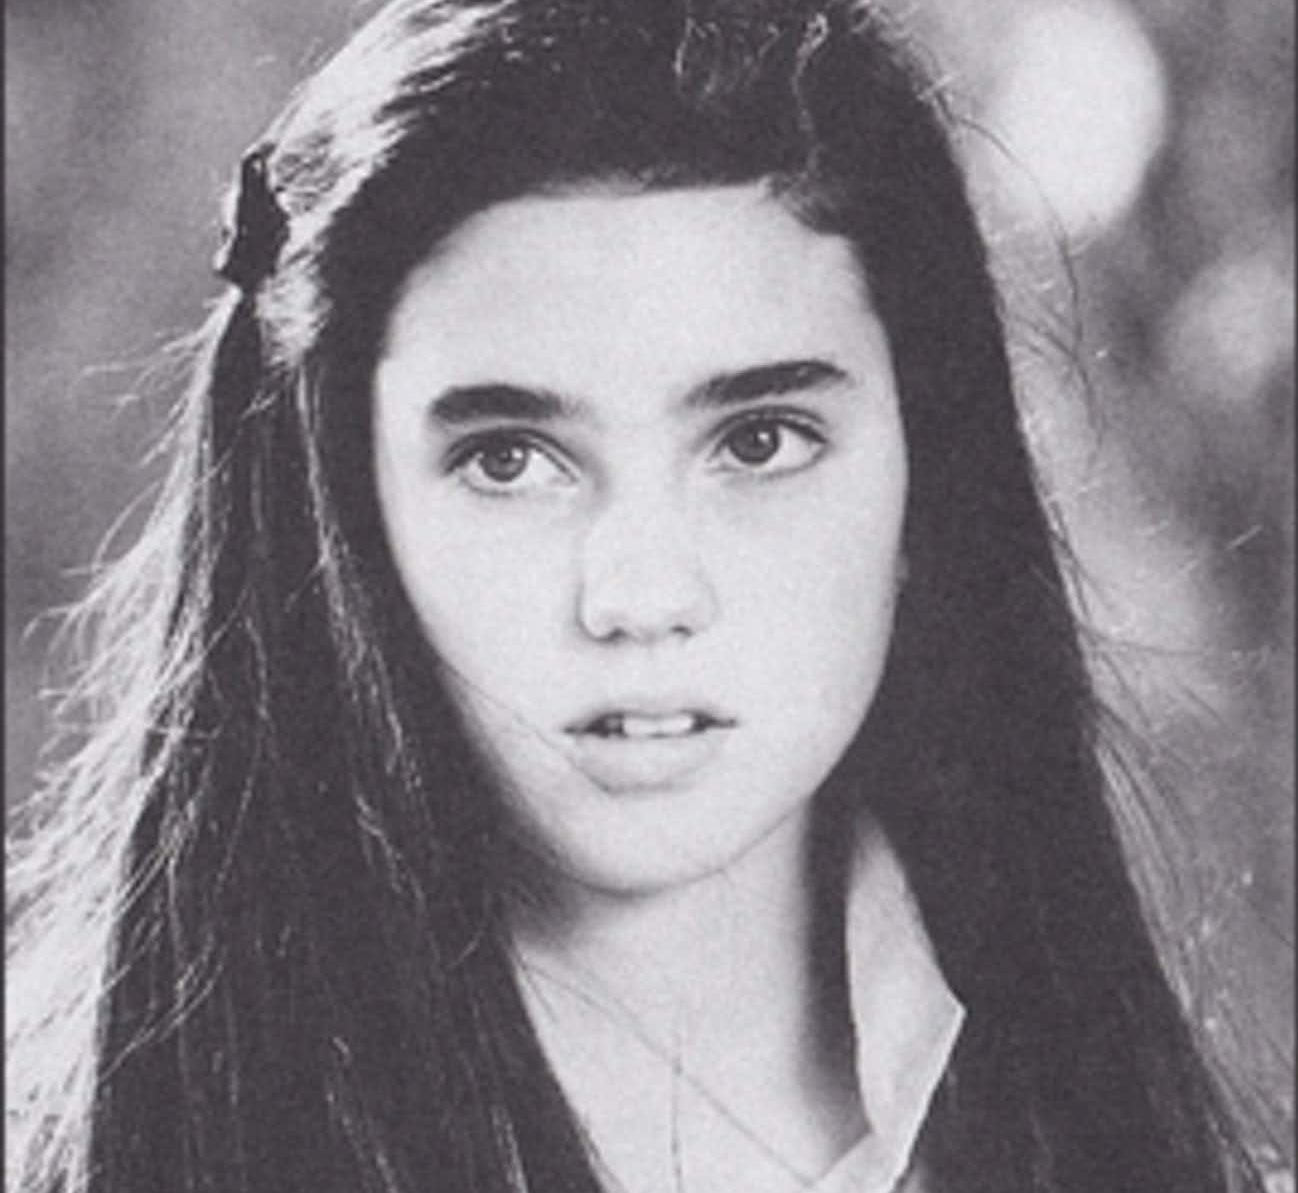 young jennifer connelly as teenager photo u1 e1609943347438 20 Things You Probably Didn't Know About Jennifer Connelly